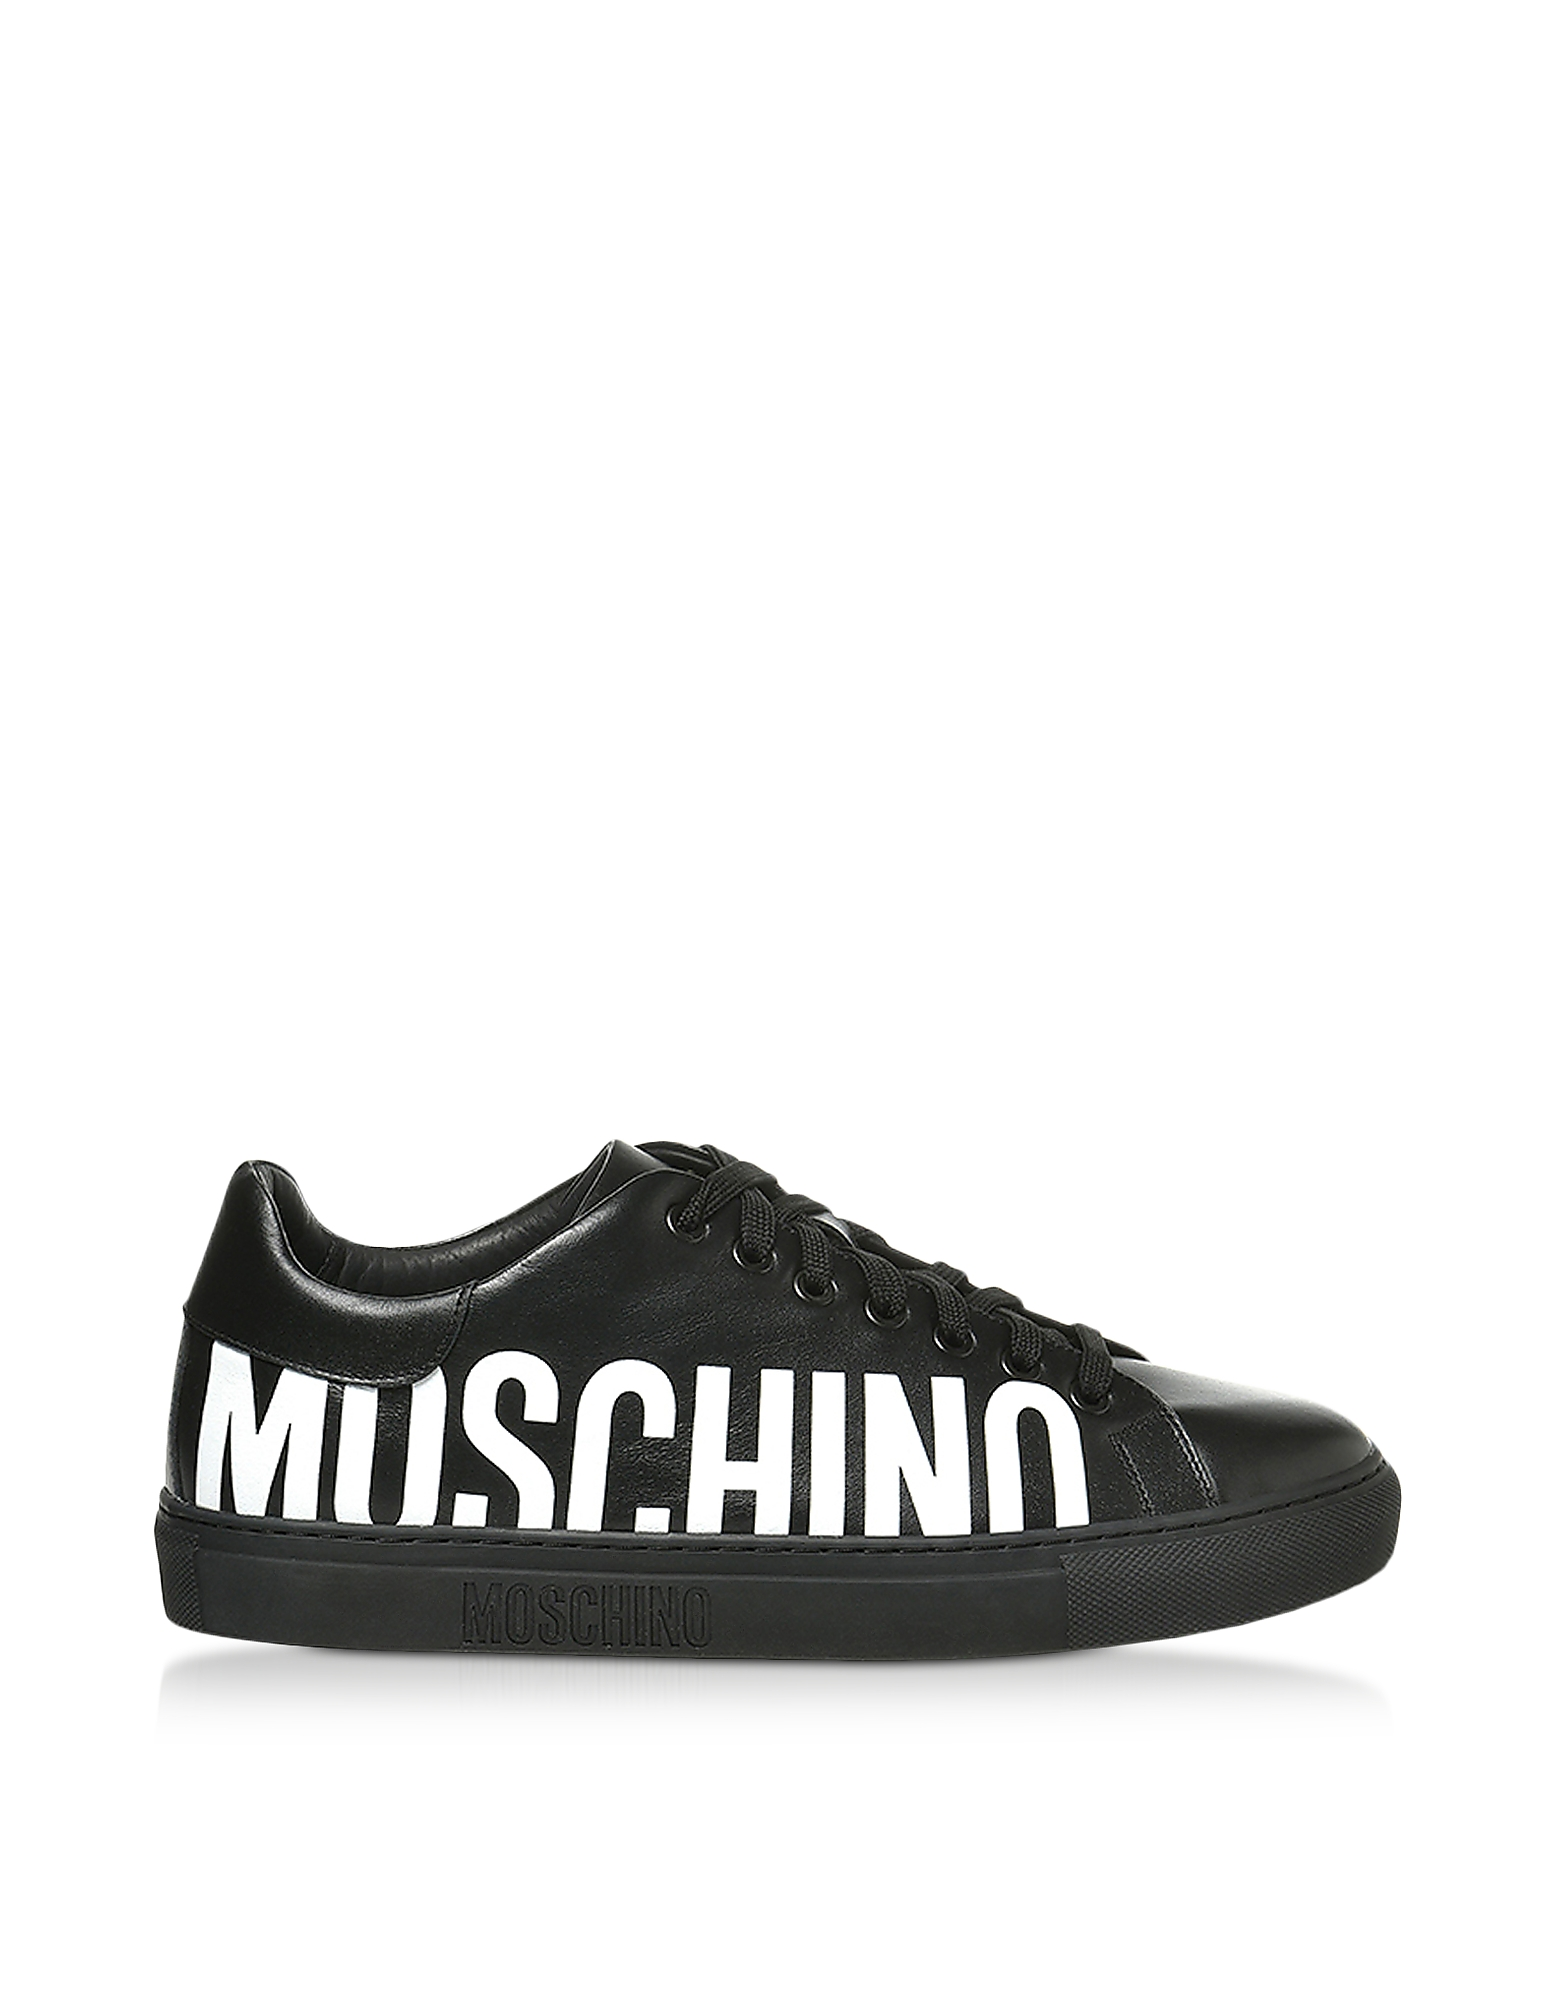 Signature Black Leather Men's Sneakers